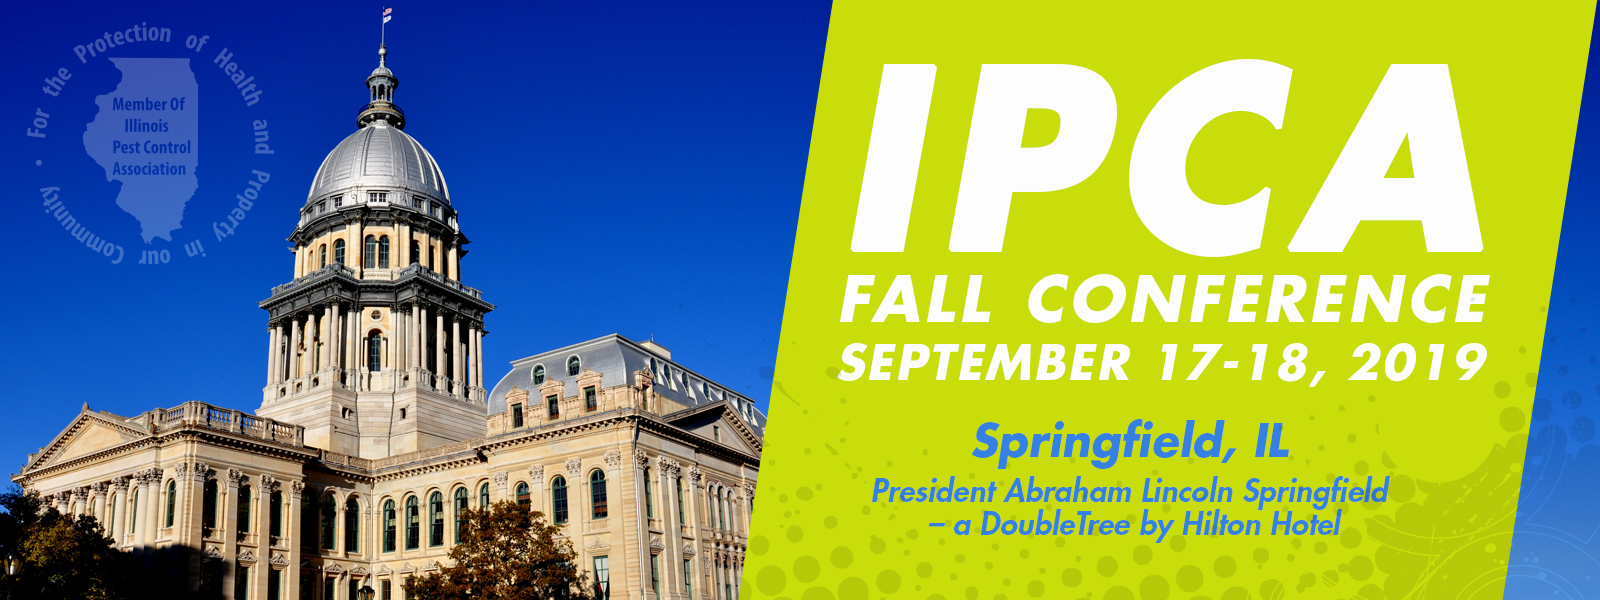 IPCA Fall 2019 Conference Banner